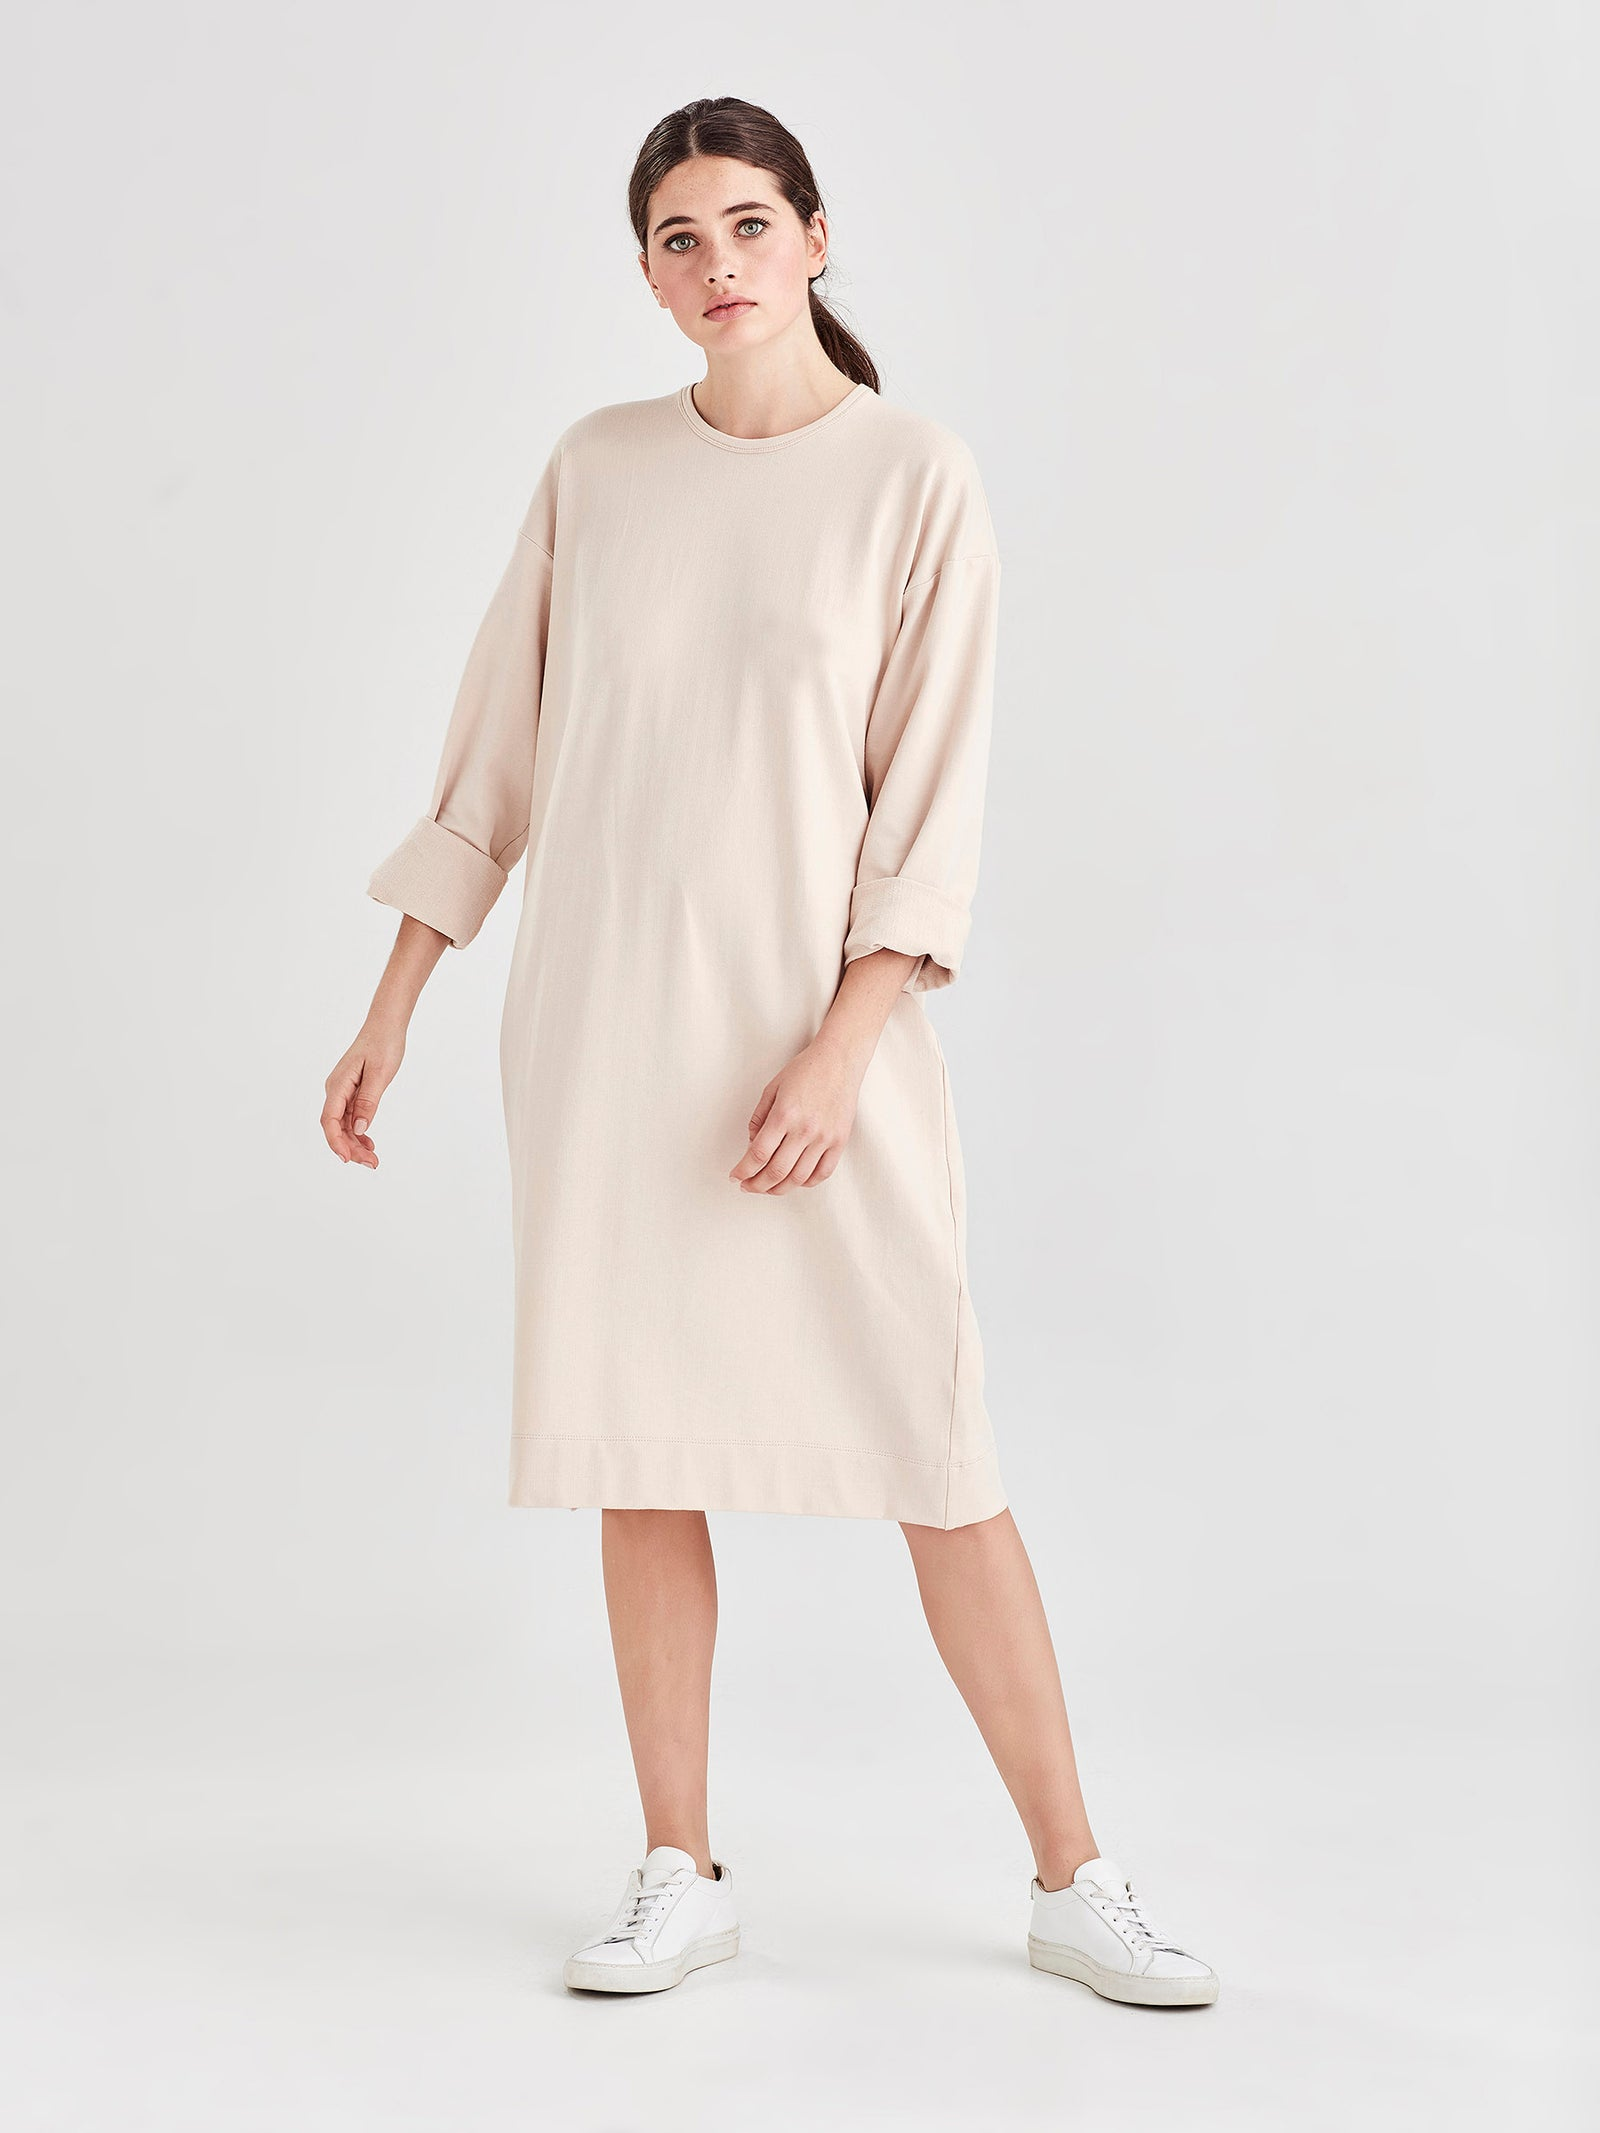 L/S Box T Dress (Luxe Cotton Sweatshirting) Powder